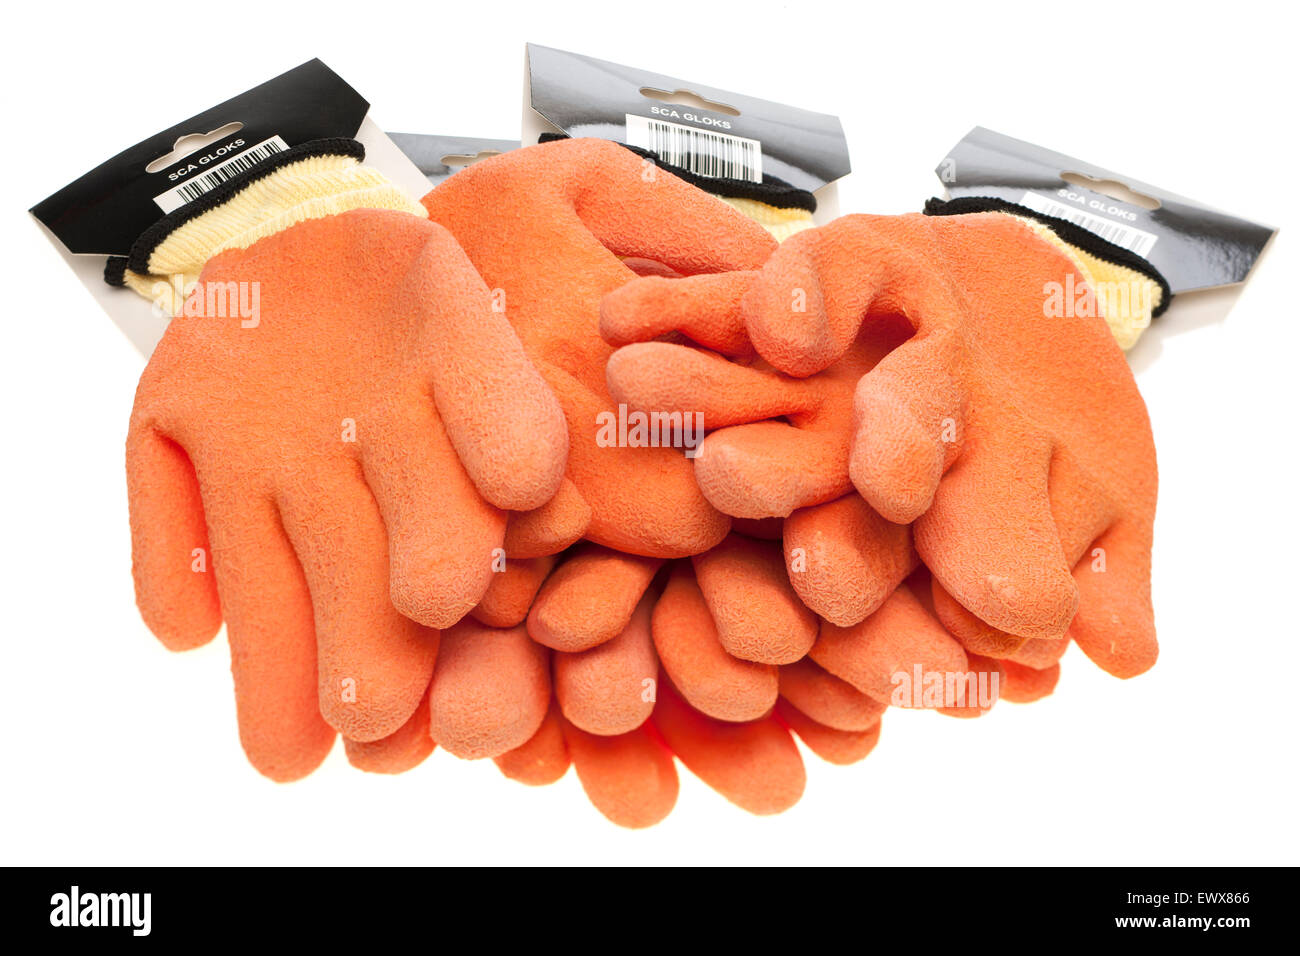 Four pairs of orange and yellow  non slip latex coated and knitted seamless safety wear work gloves - Stock Image